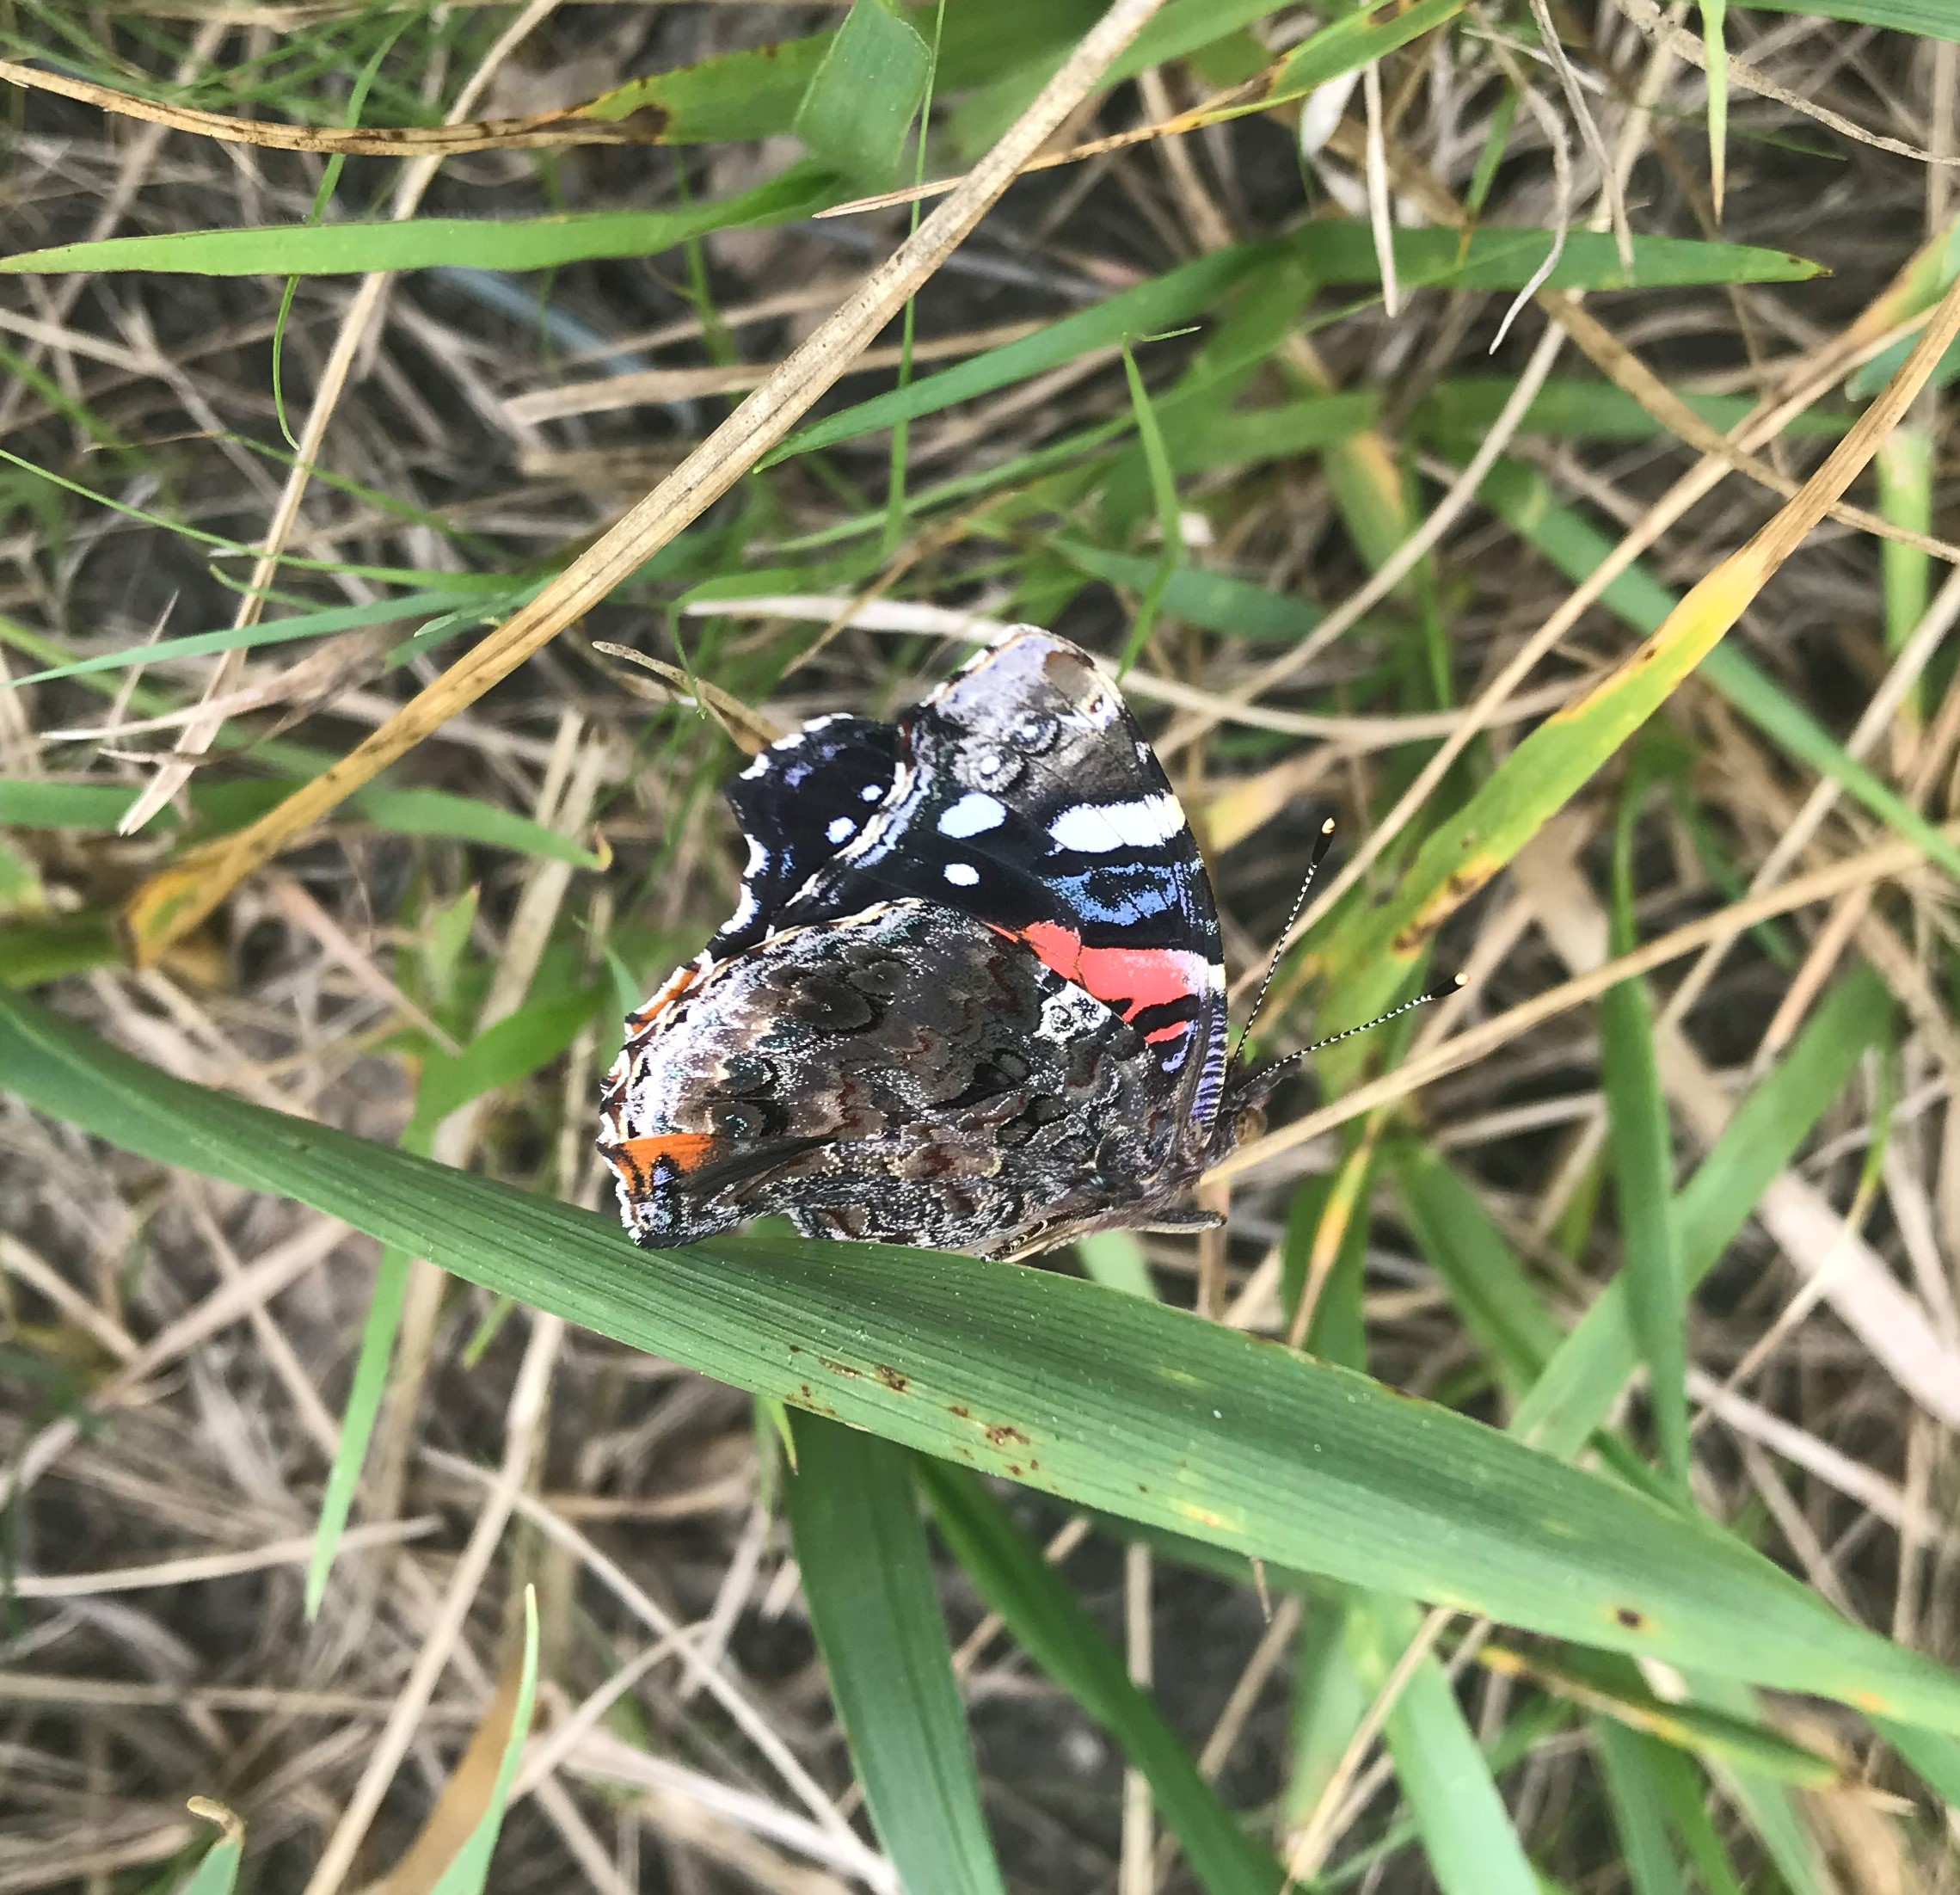 This red admiral butterfly, <em>Vanessa atalanta</em>, was spotted on Wilson Road. nature, wildlife, animal, insect, butterfly, red admiral butterfly Photo: Kerry Aschenbach